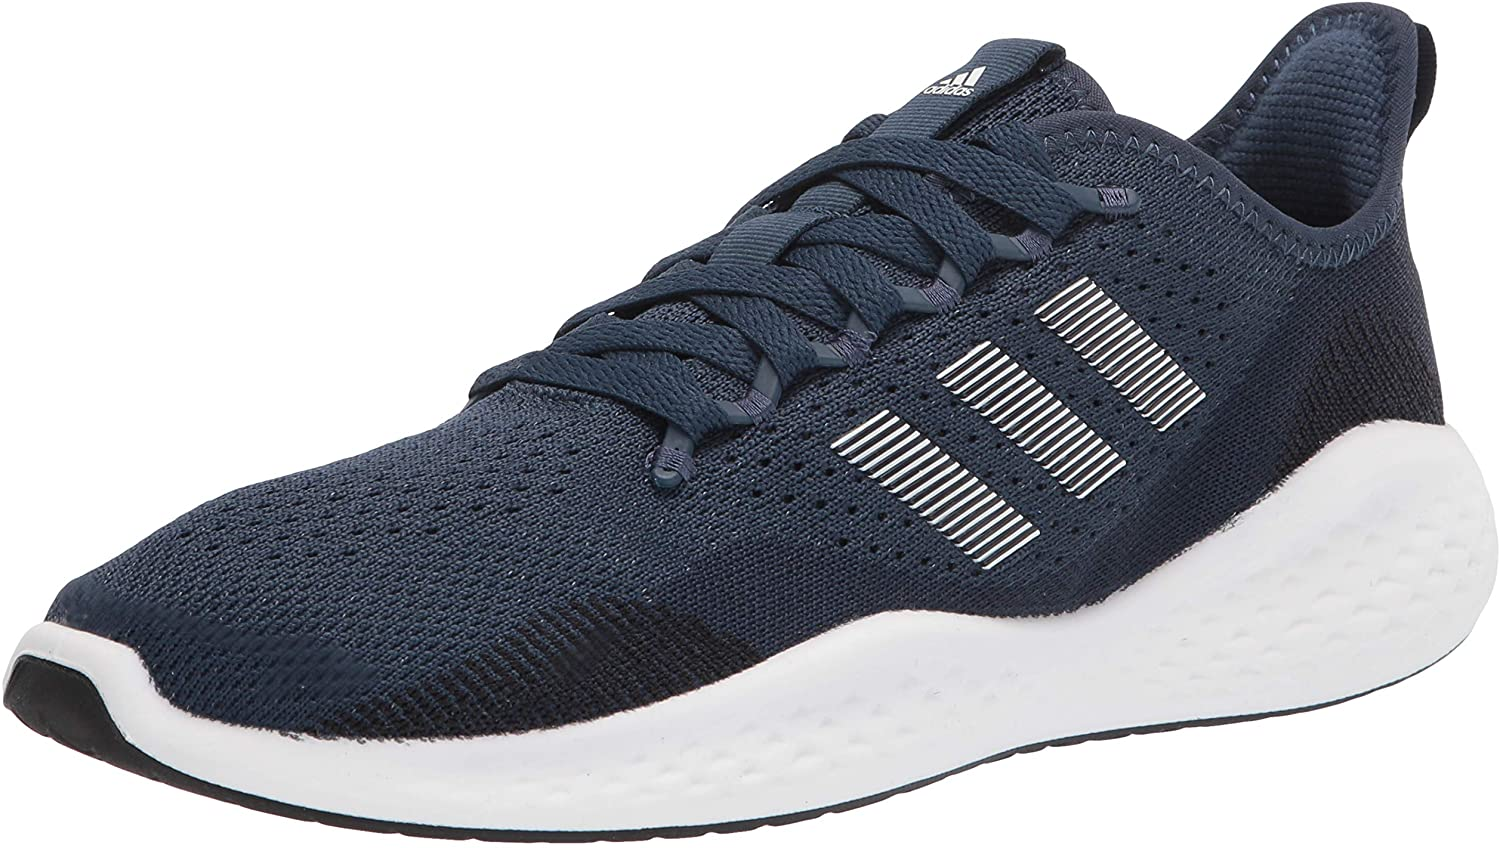 adidas Men's Fluidflow Shoe Running Safety and trust OFFicial shop 2.0